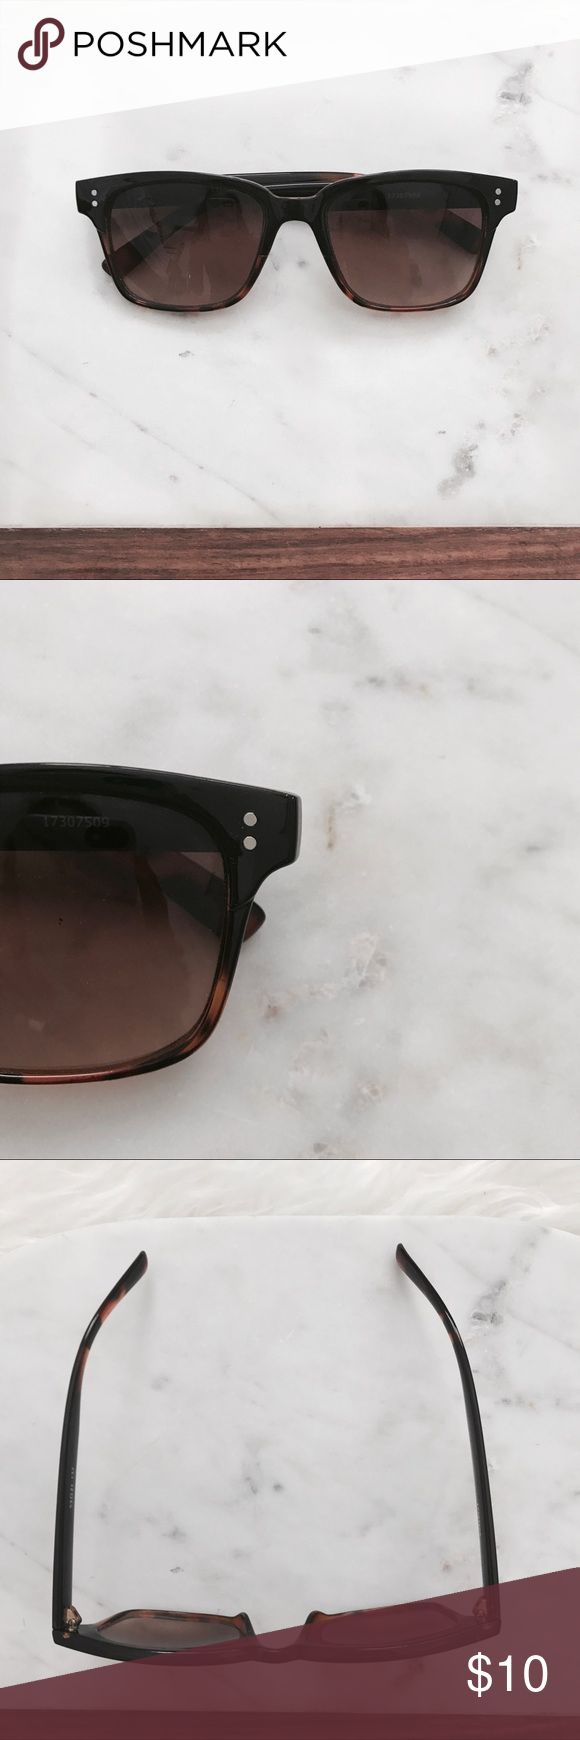 Tortoise Shell Sunglasses Chick tortoise she'll sunglasses. Super cute for everyday wear. In excellent condition! Accessories Sunglasses